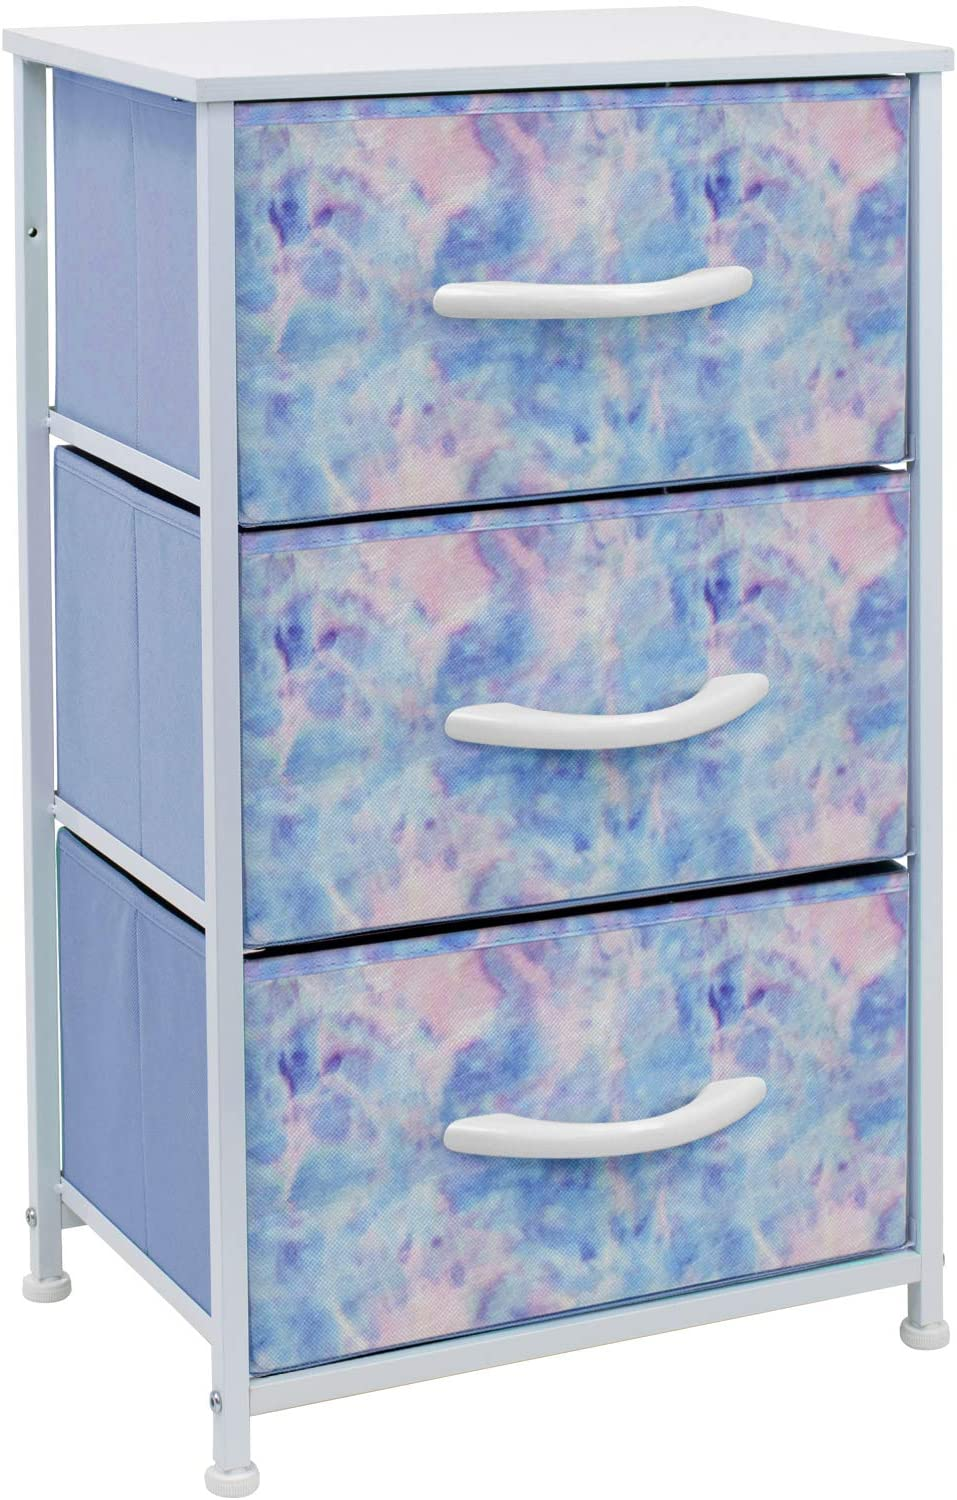 Sorbus Nightstand with 3 Drawers - Bedside Furniture & Accent End Table Chest for Home, Bedroom Accessories, Office, College Dorm, Steel Frame, Wood Top, Easy Pull Fabric Bins (Pastel Tie-dye)